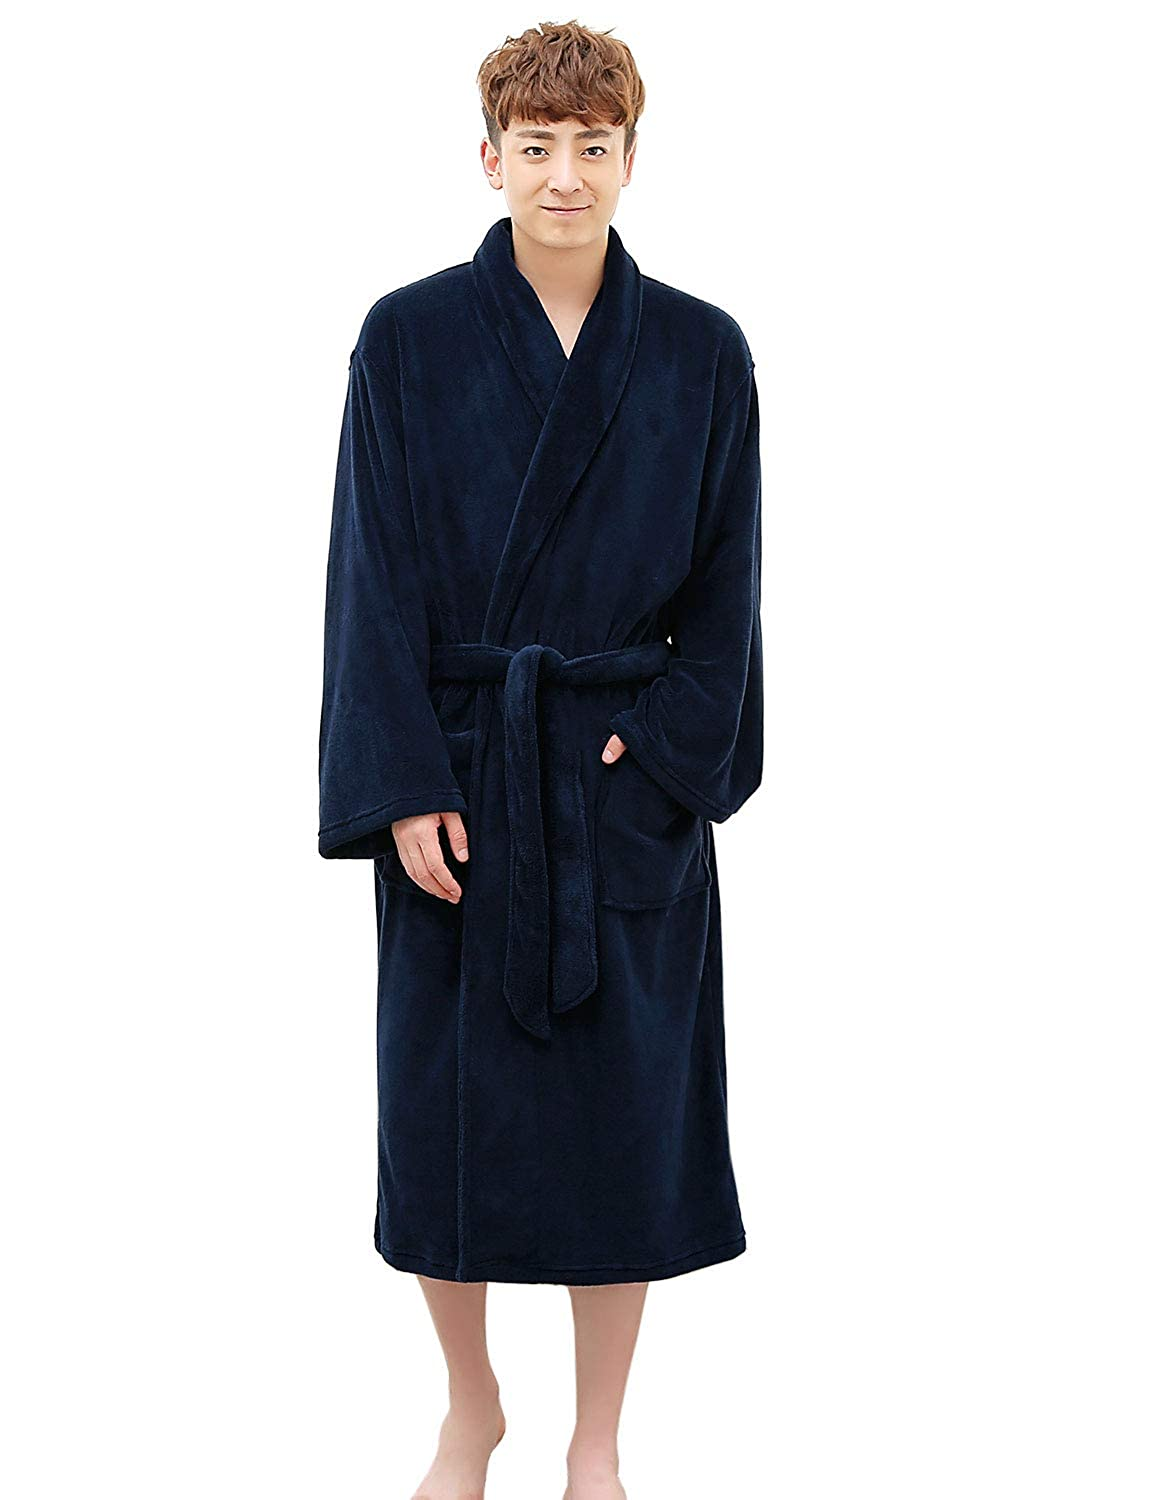 bd4aef32f6 Amazon.com: Mens Robe Knee Length Soft Sleeves Plush Shawl Sleepwear Shower  Nightgown Kimono Spa Plus Size for Men Bath Robes: Clothing